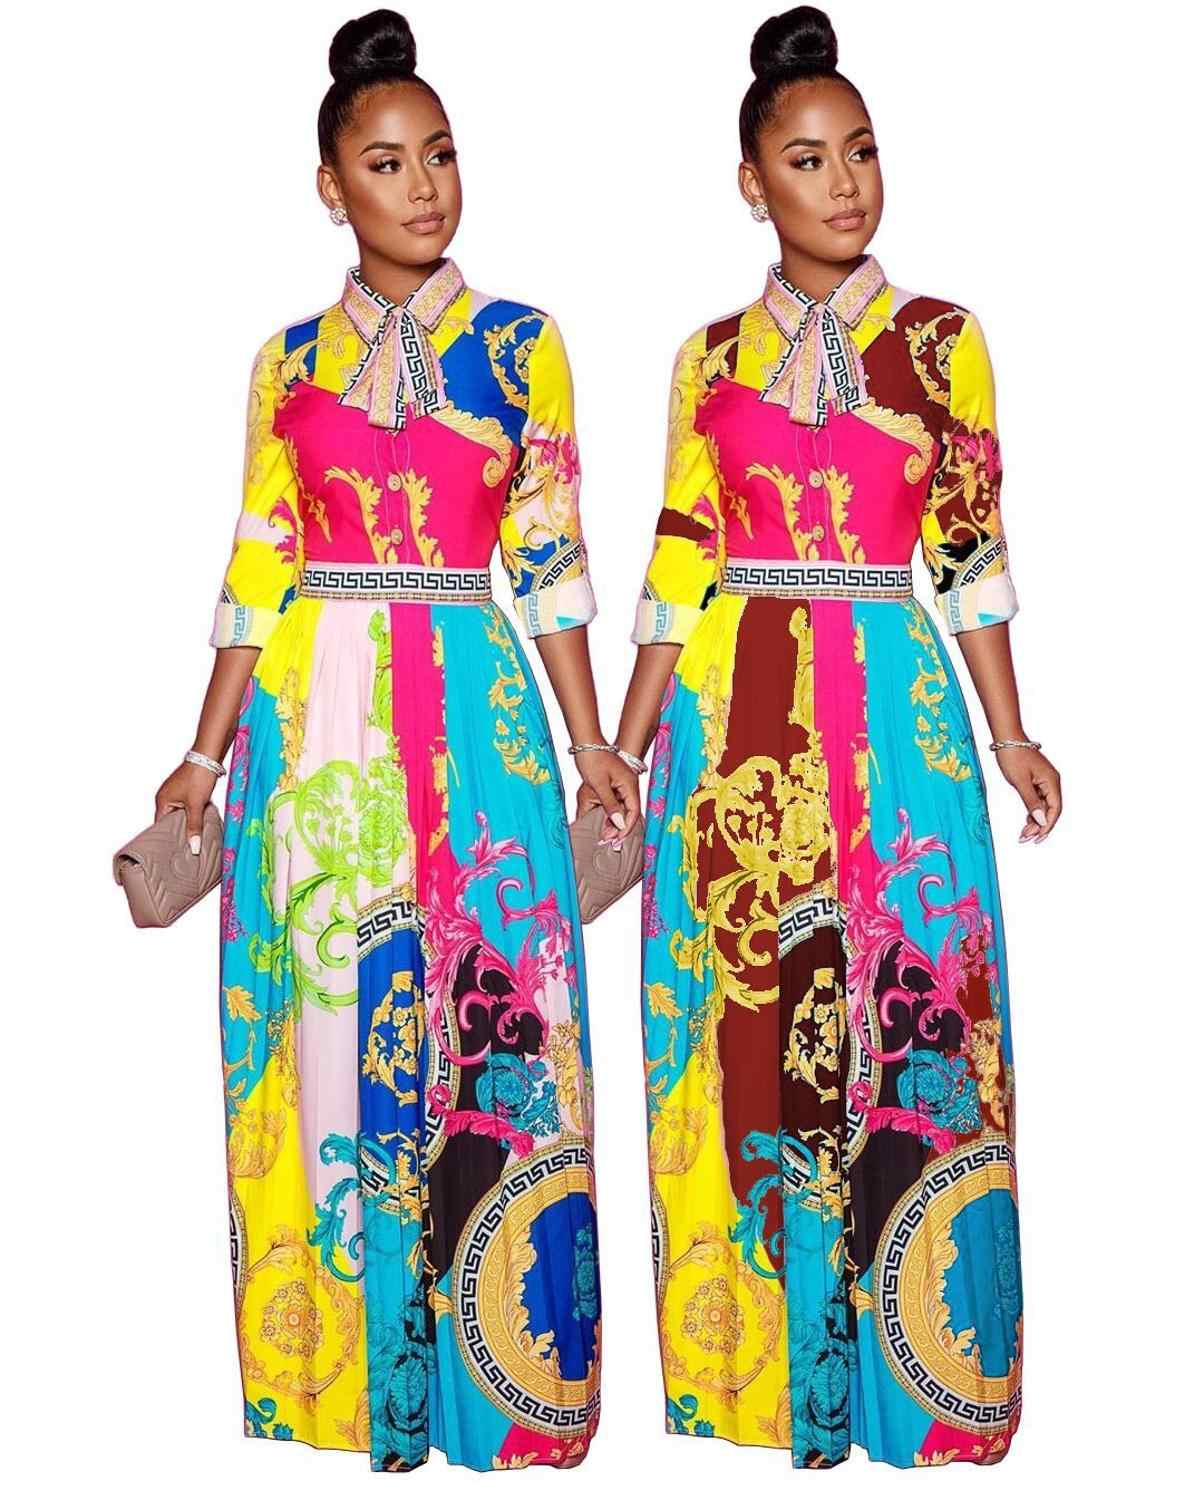 Charming Women Printed Long Dress Bow Turn down Neck Long Sleeves Fashion Floor Length Casual Dresses New Arrivals 2020